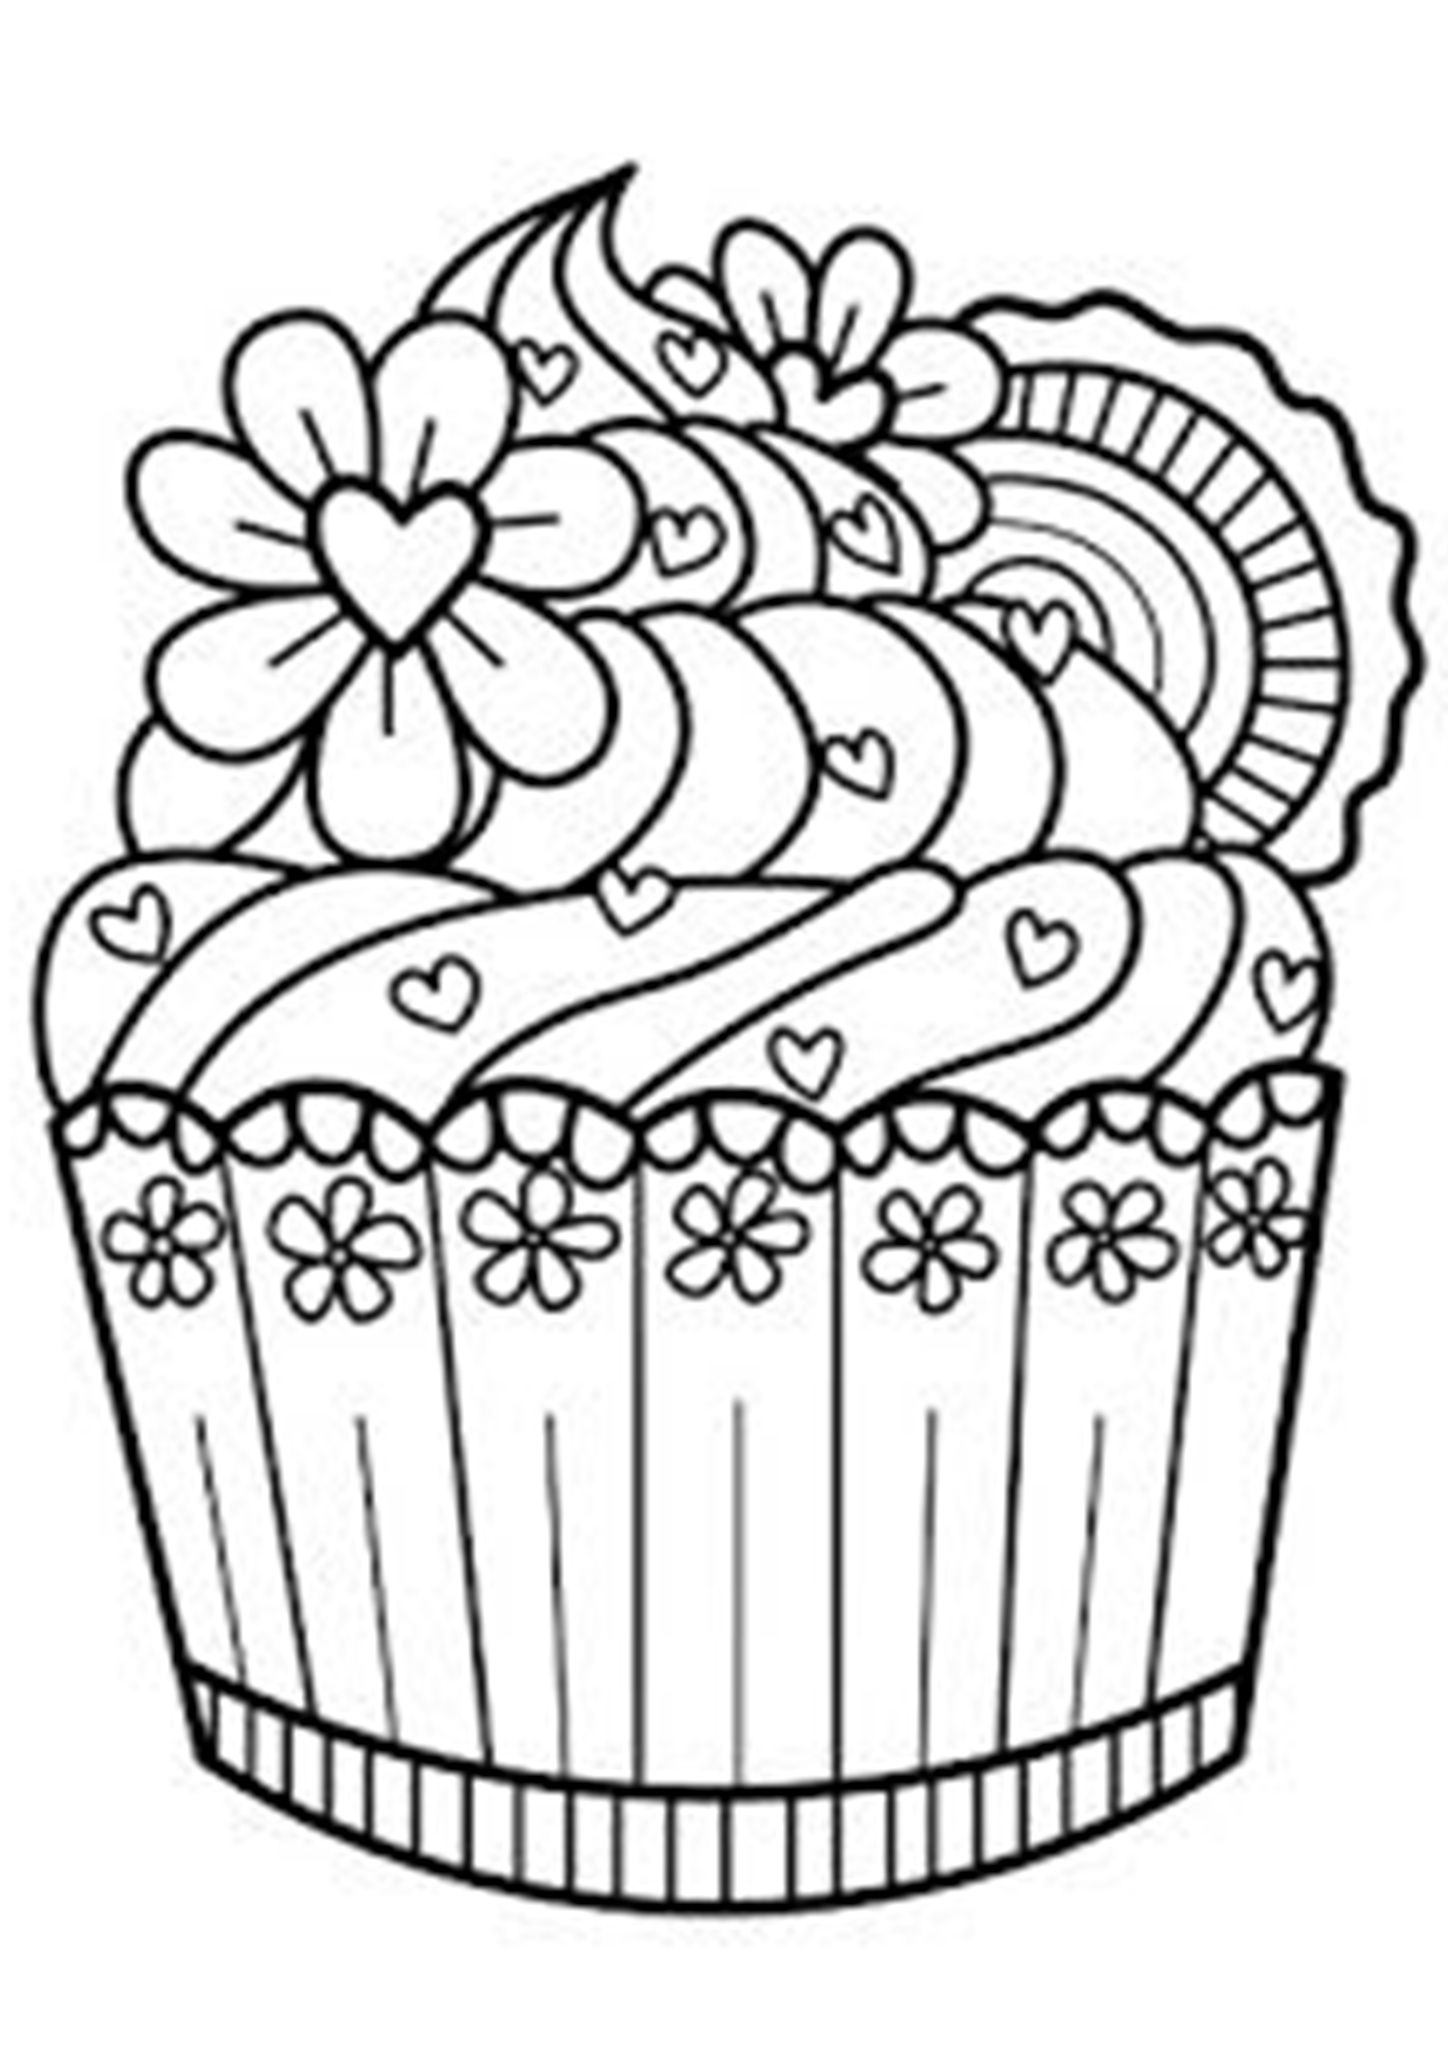 49++ Cupcake coloring pages for adults ideas